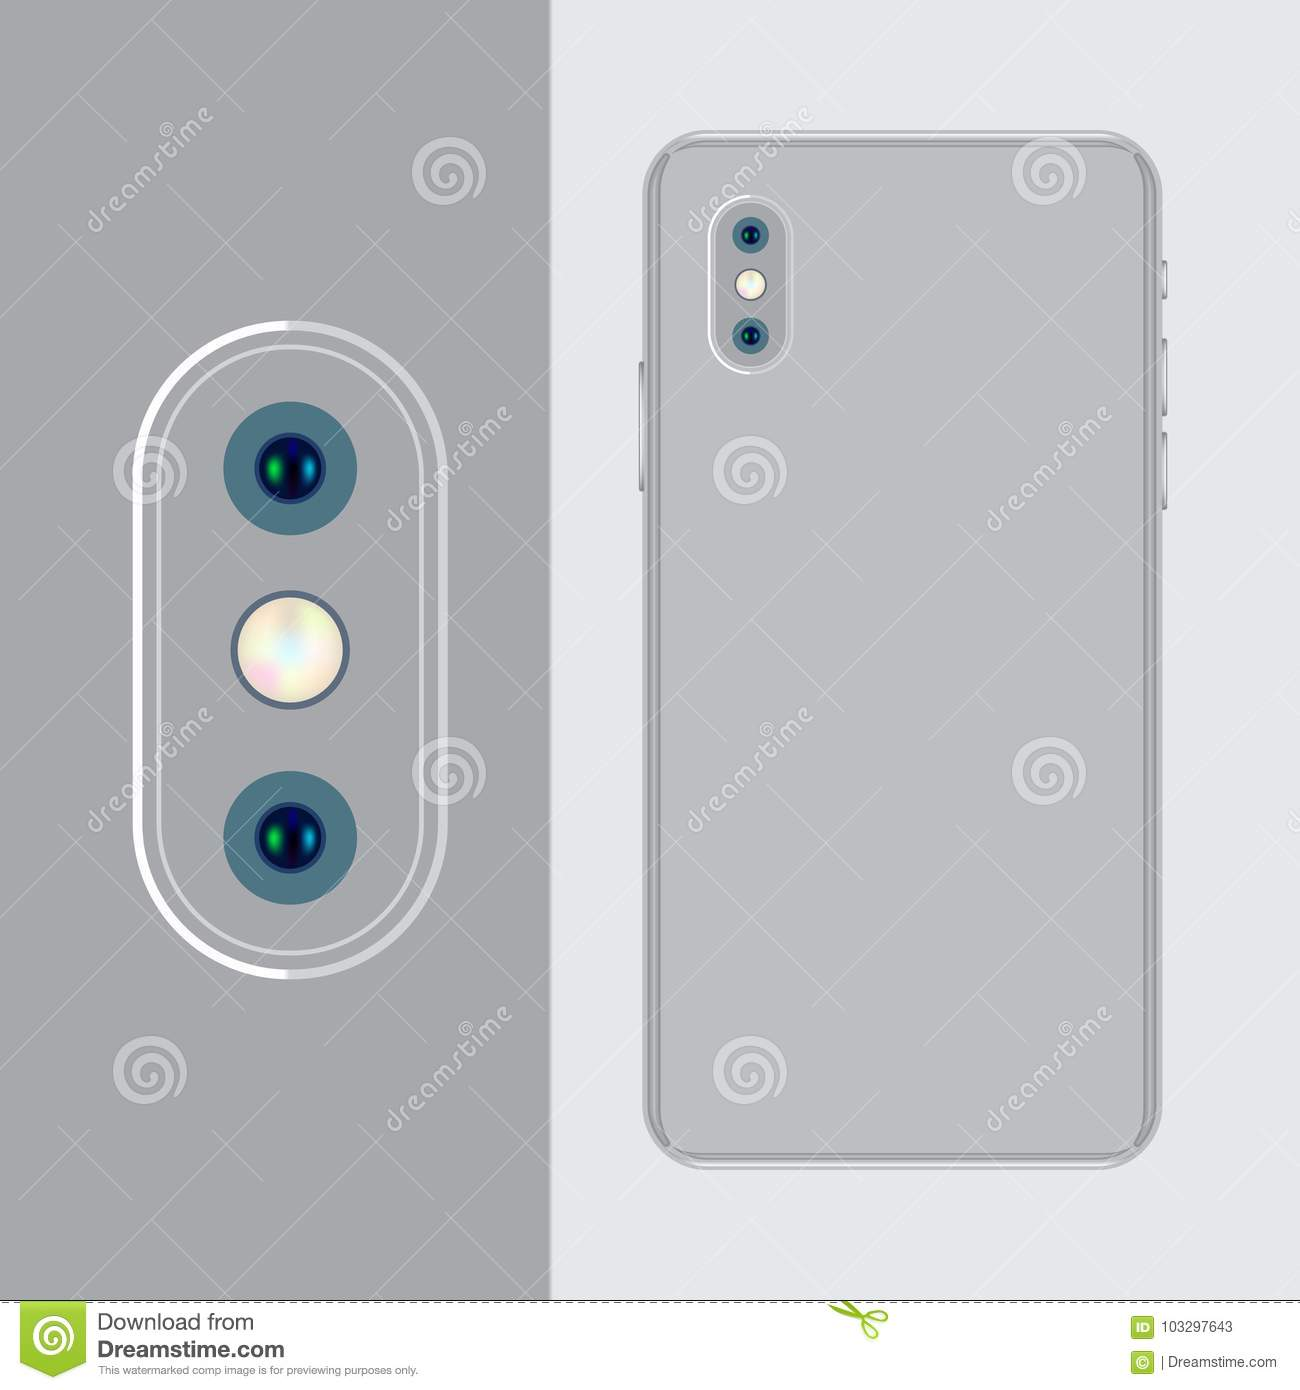 The Back Of The Mobile Phone Is Silvery And The Vertical Camera With